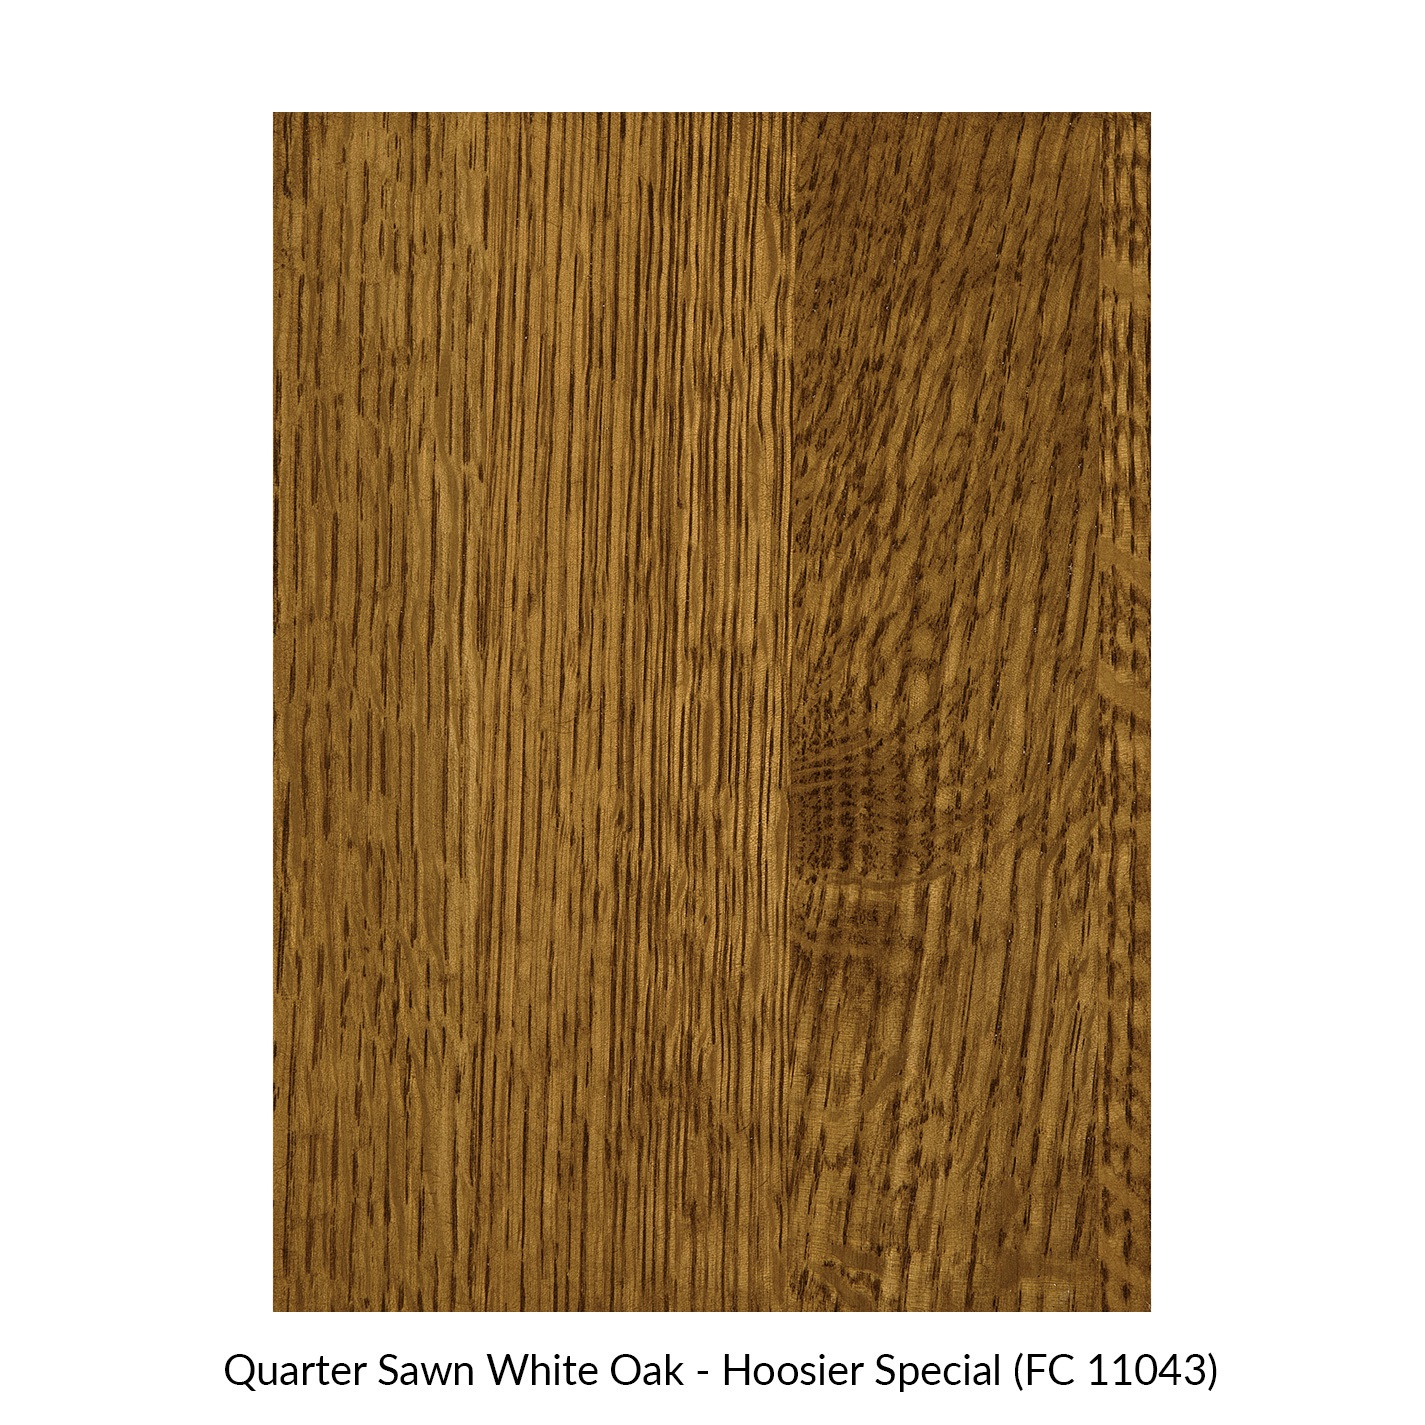 spectrum-quarter-sawn-white-oak-hoosier-special-fc-11043.jpg